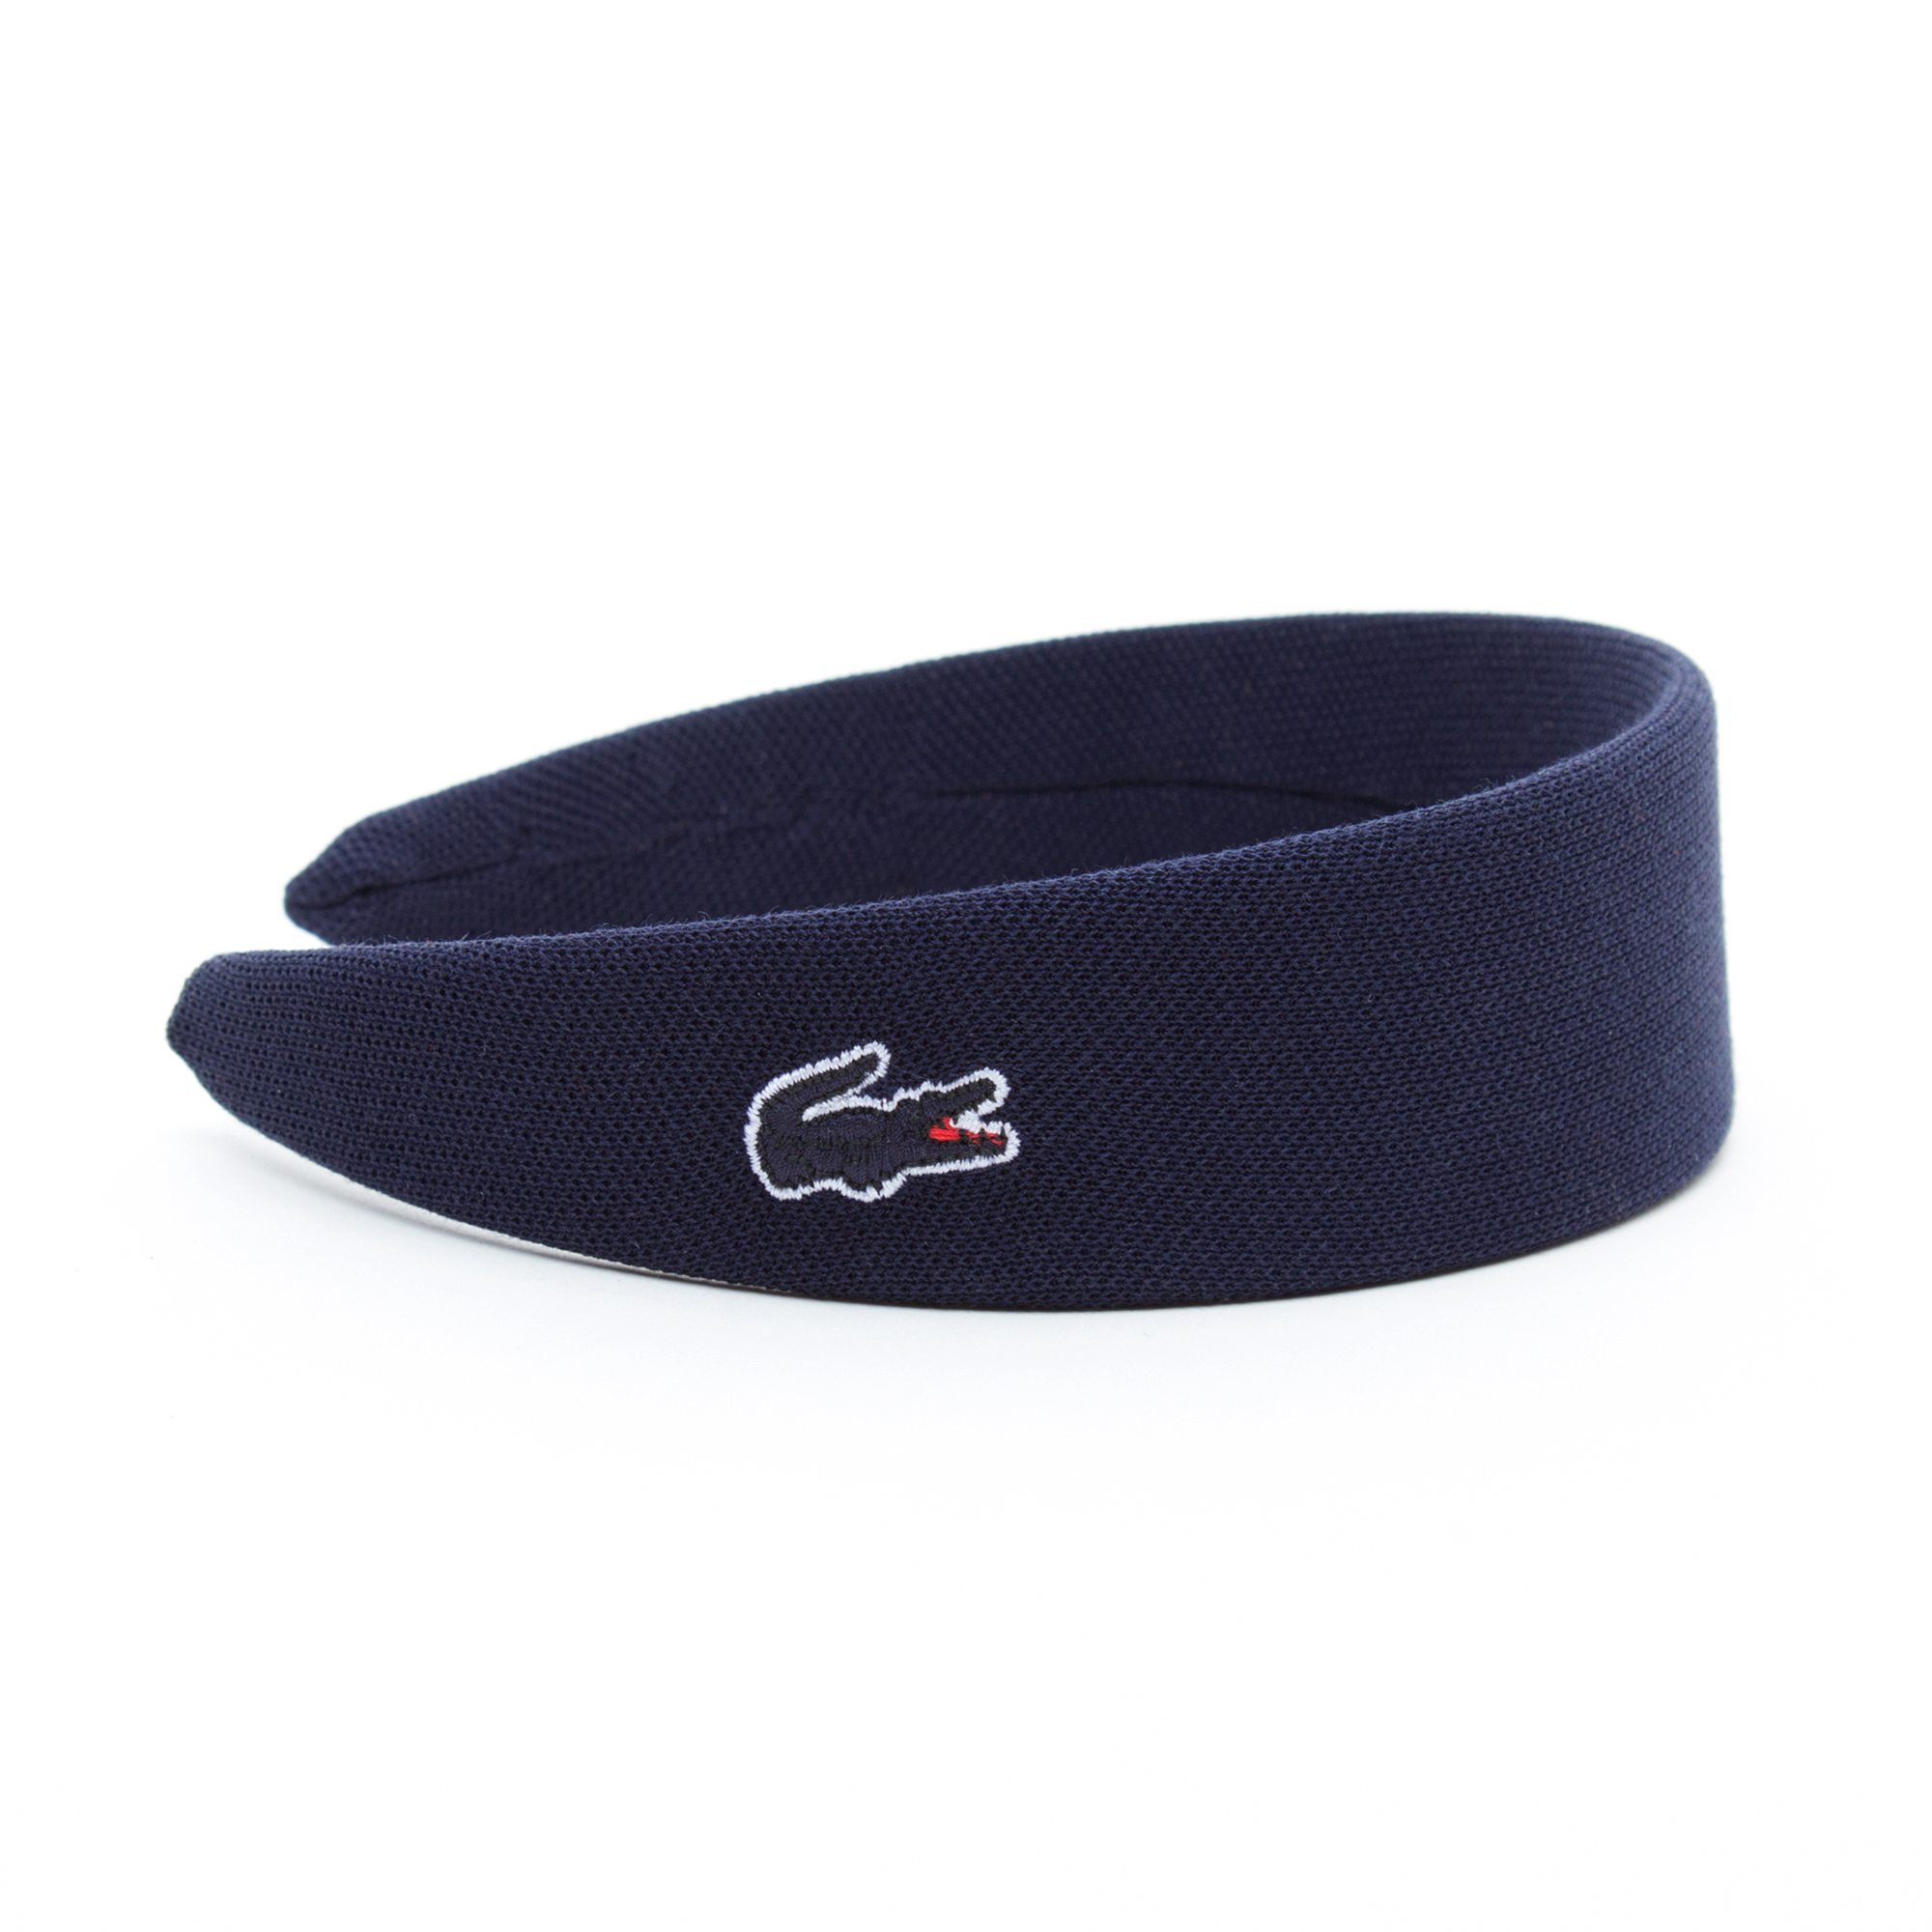 Lacoste Women's Hairband